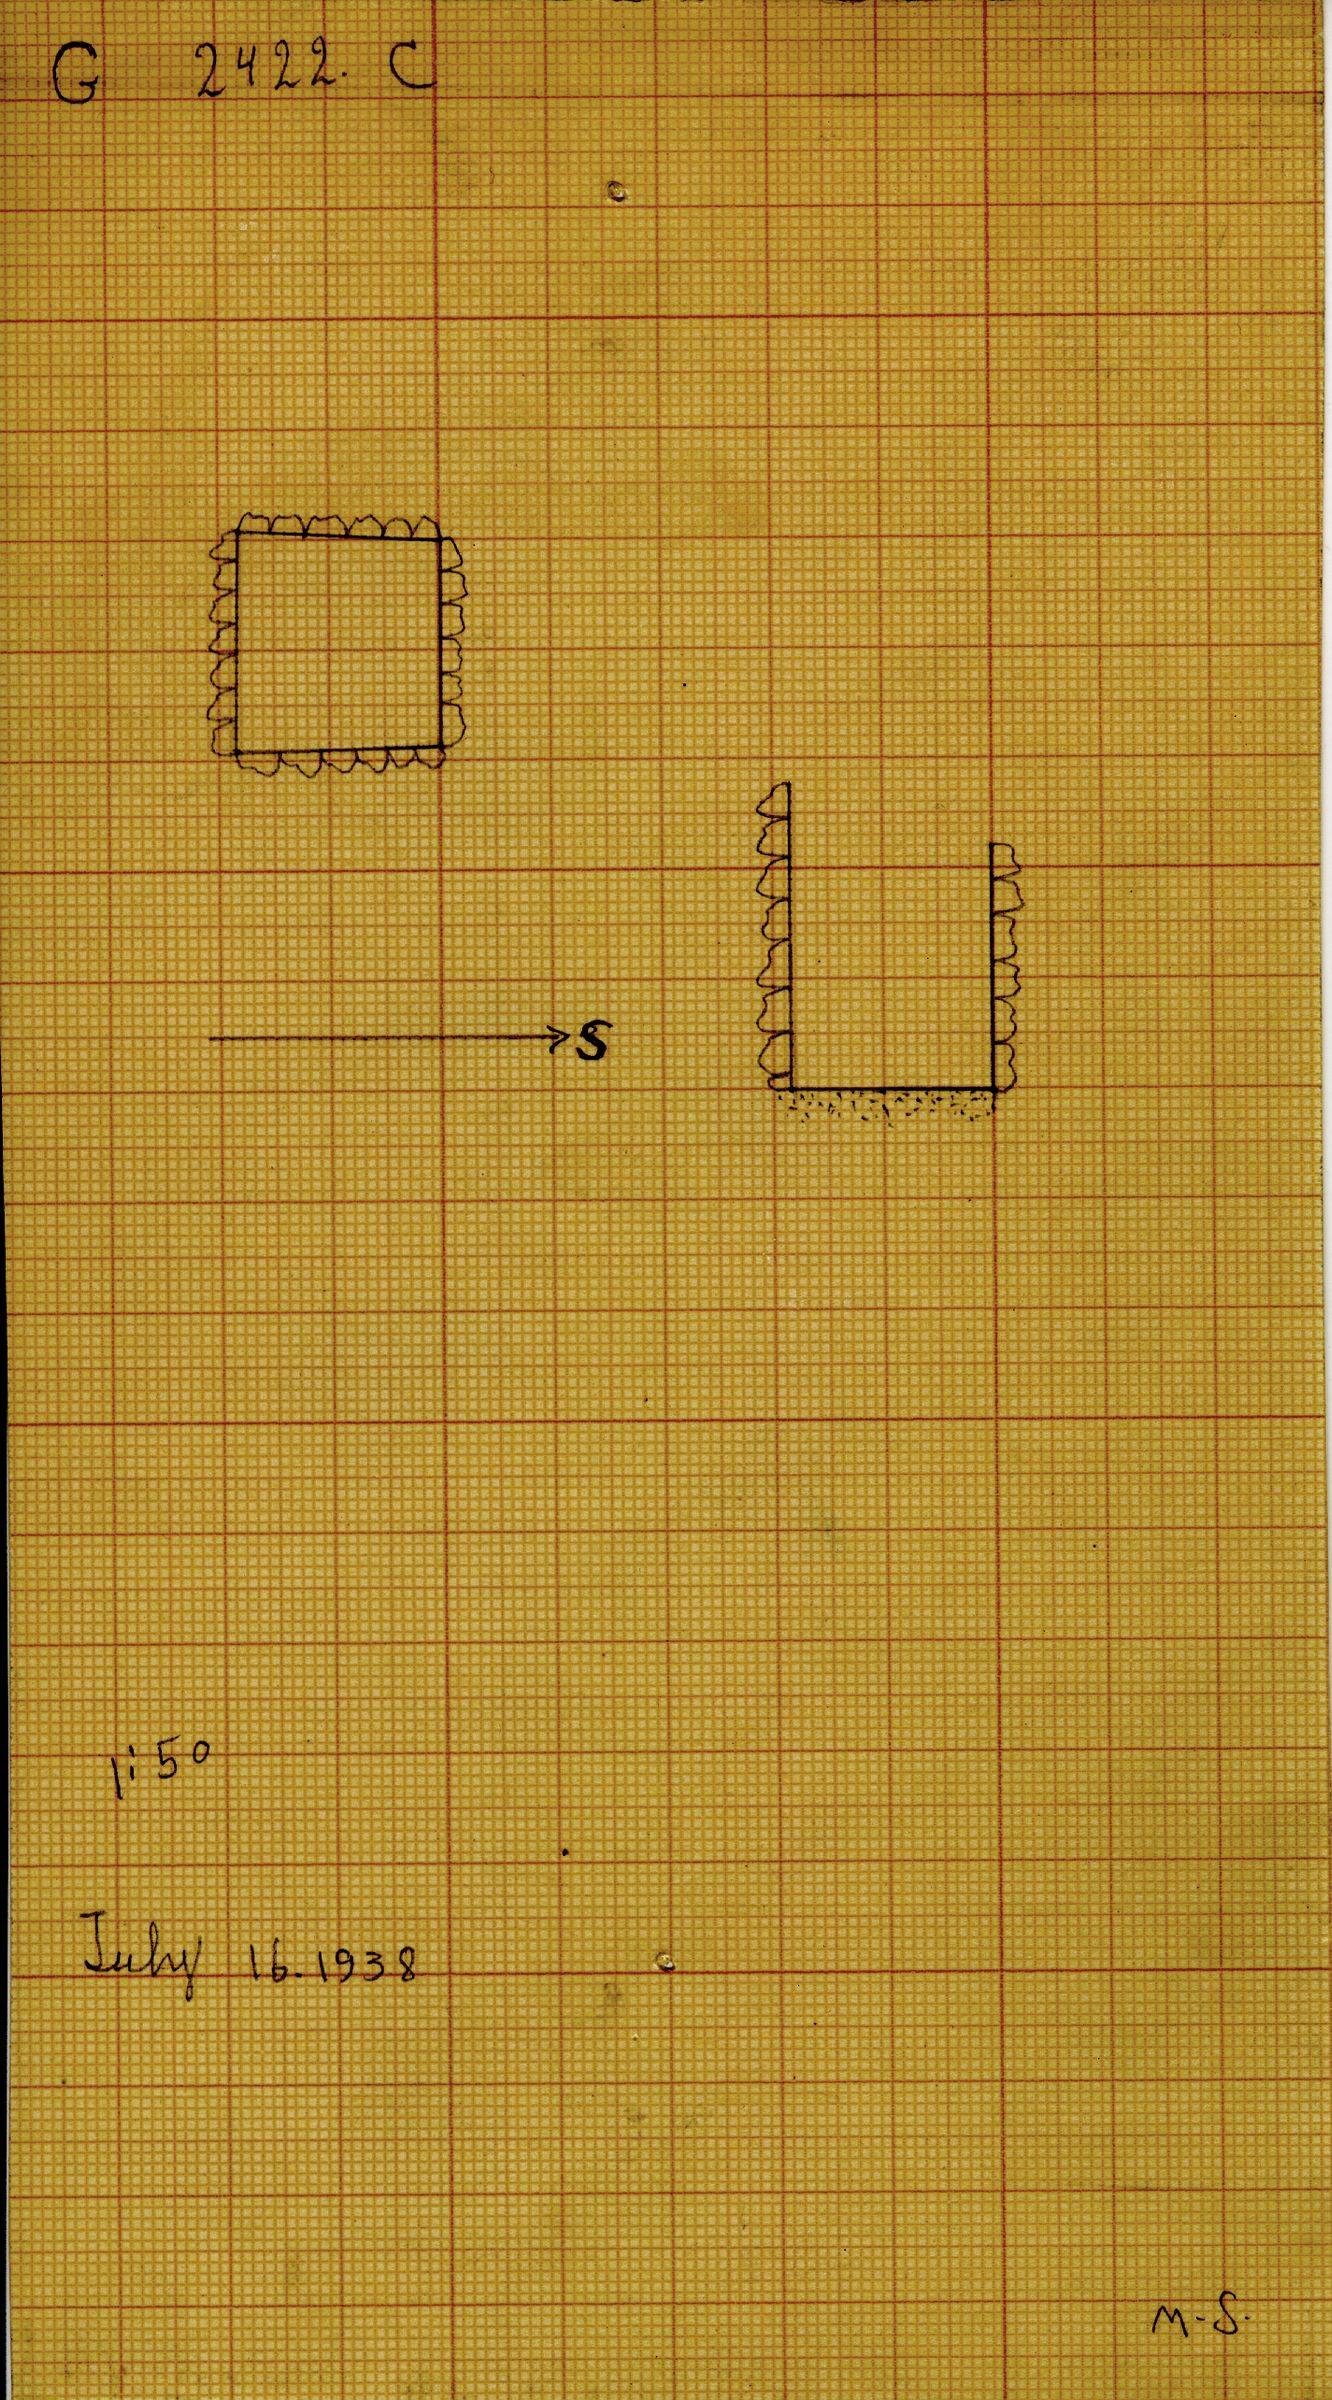 Maps and plans: G 2422, Shaft C